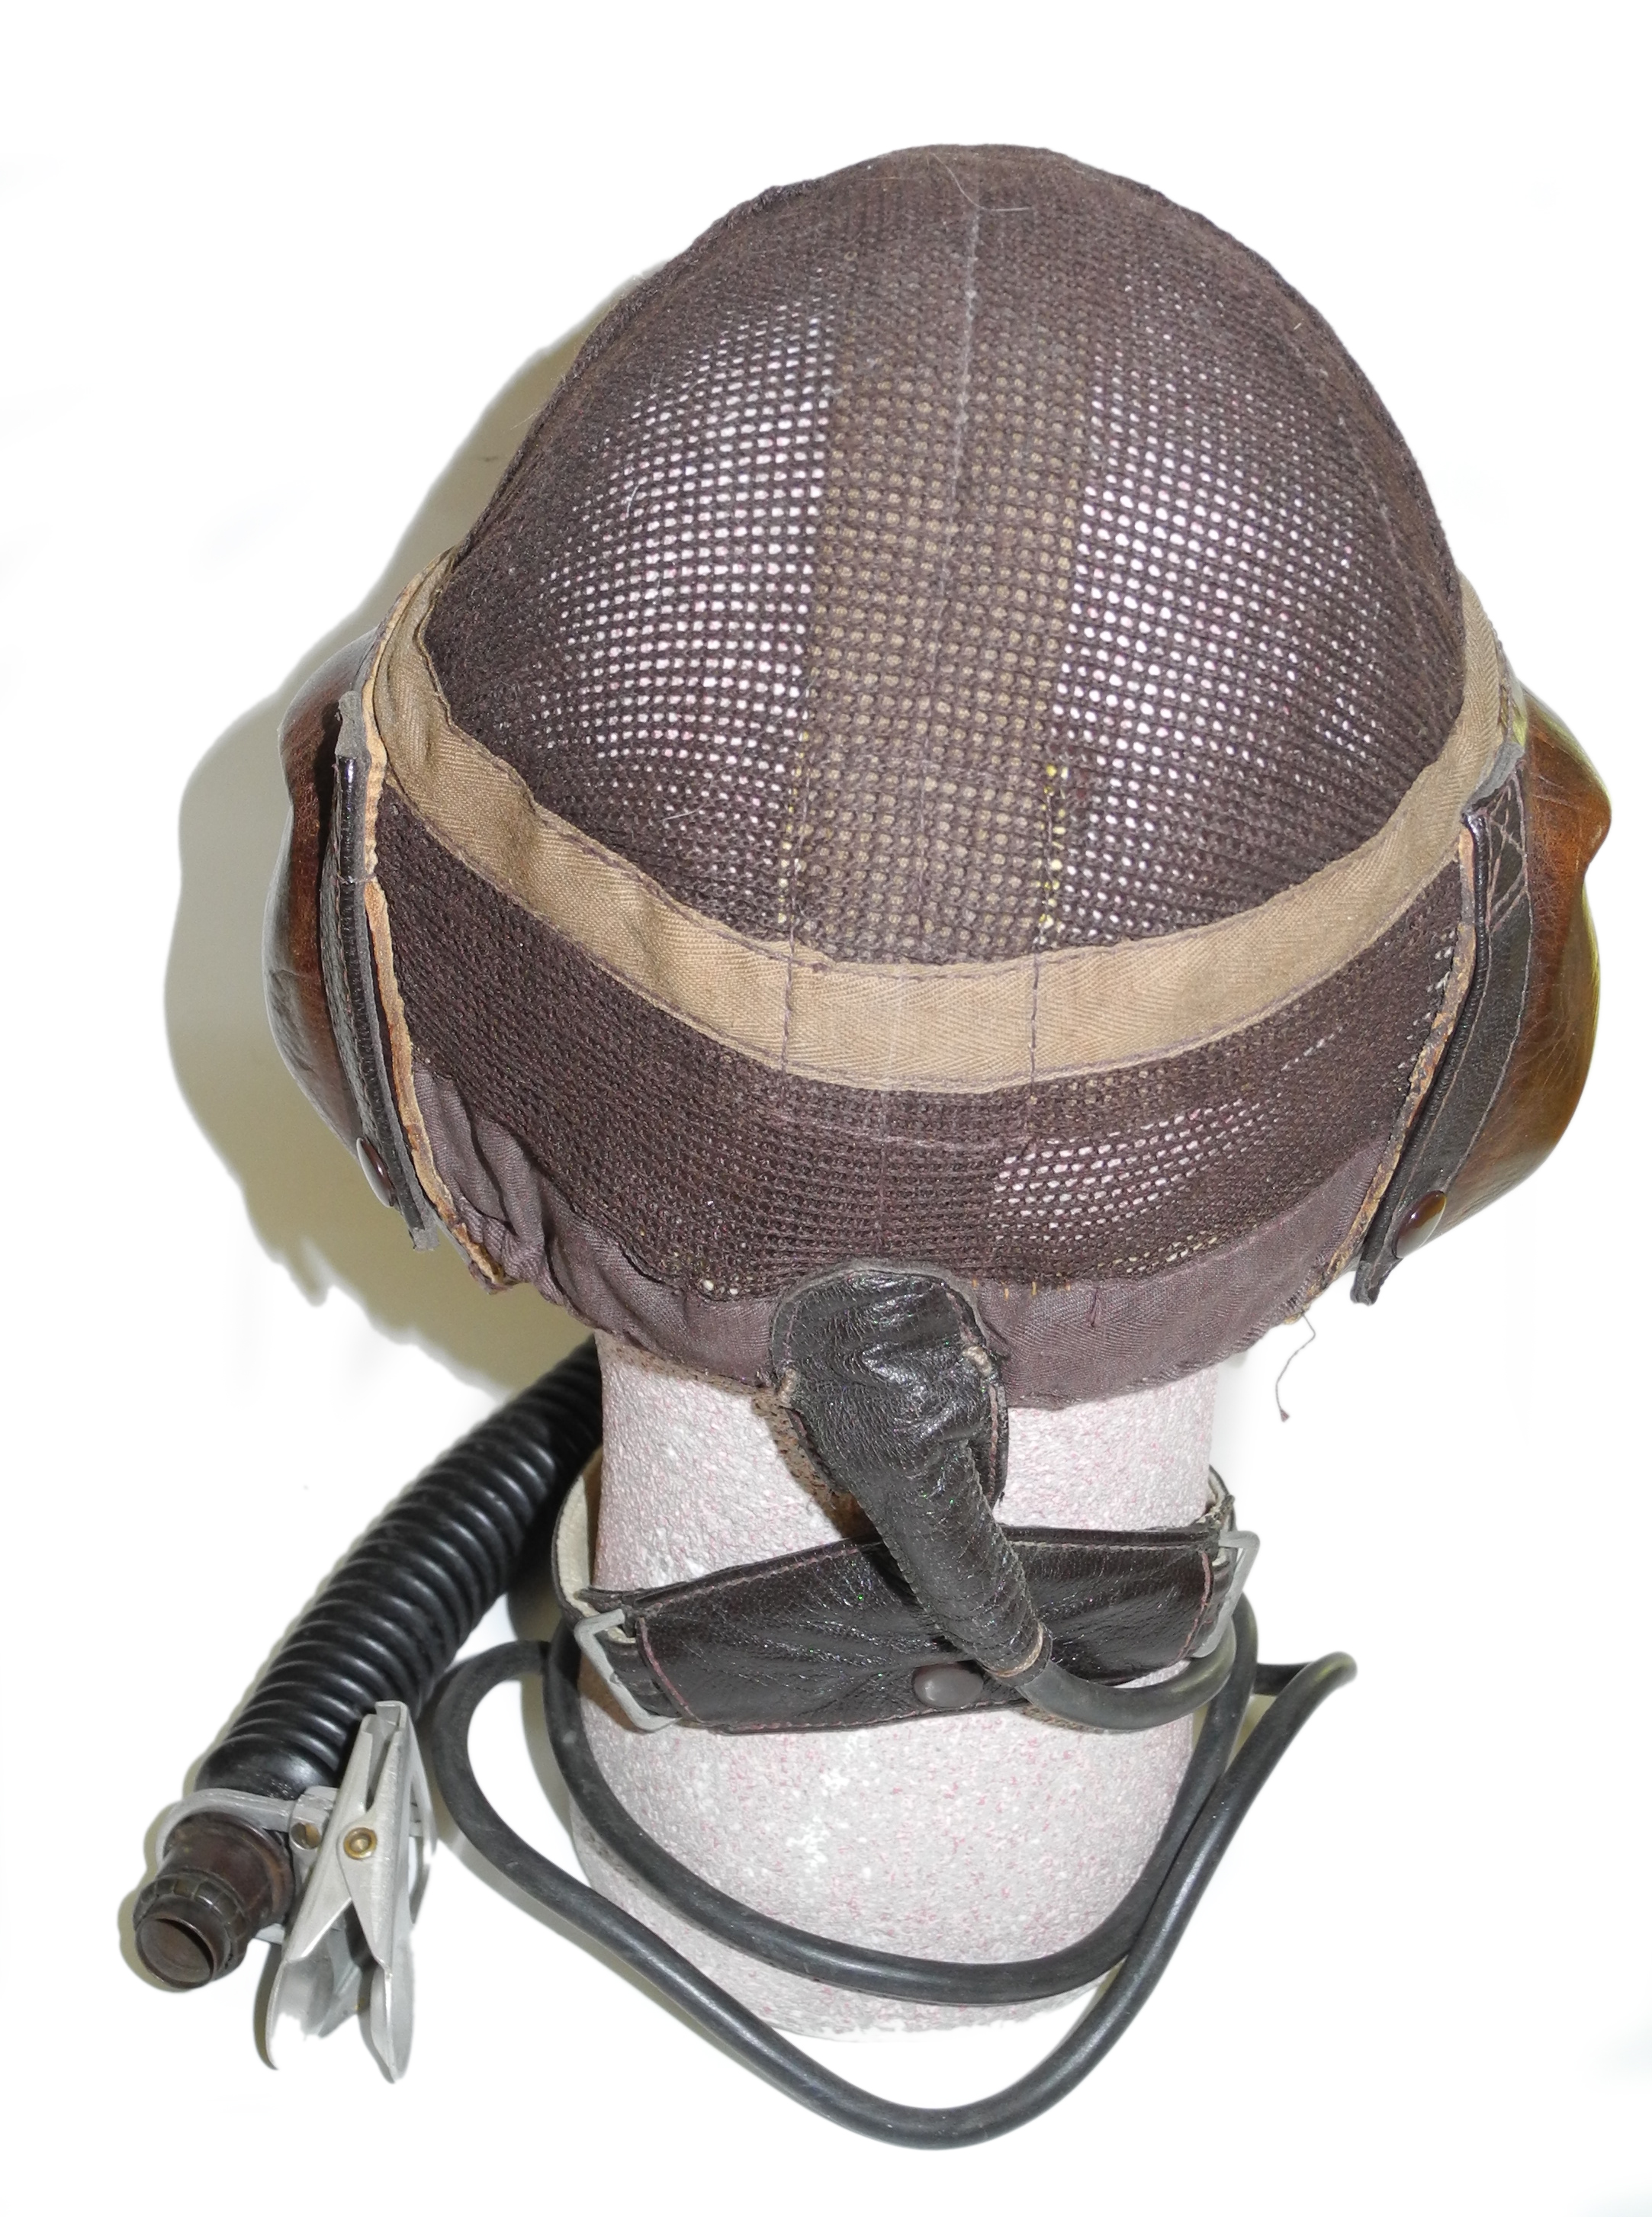 LW fighter pilot helmet + mask $1850